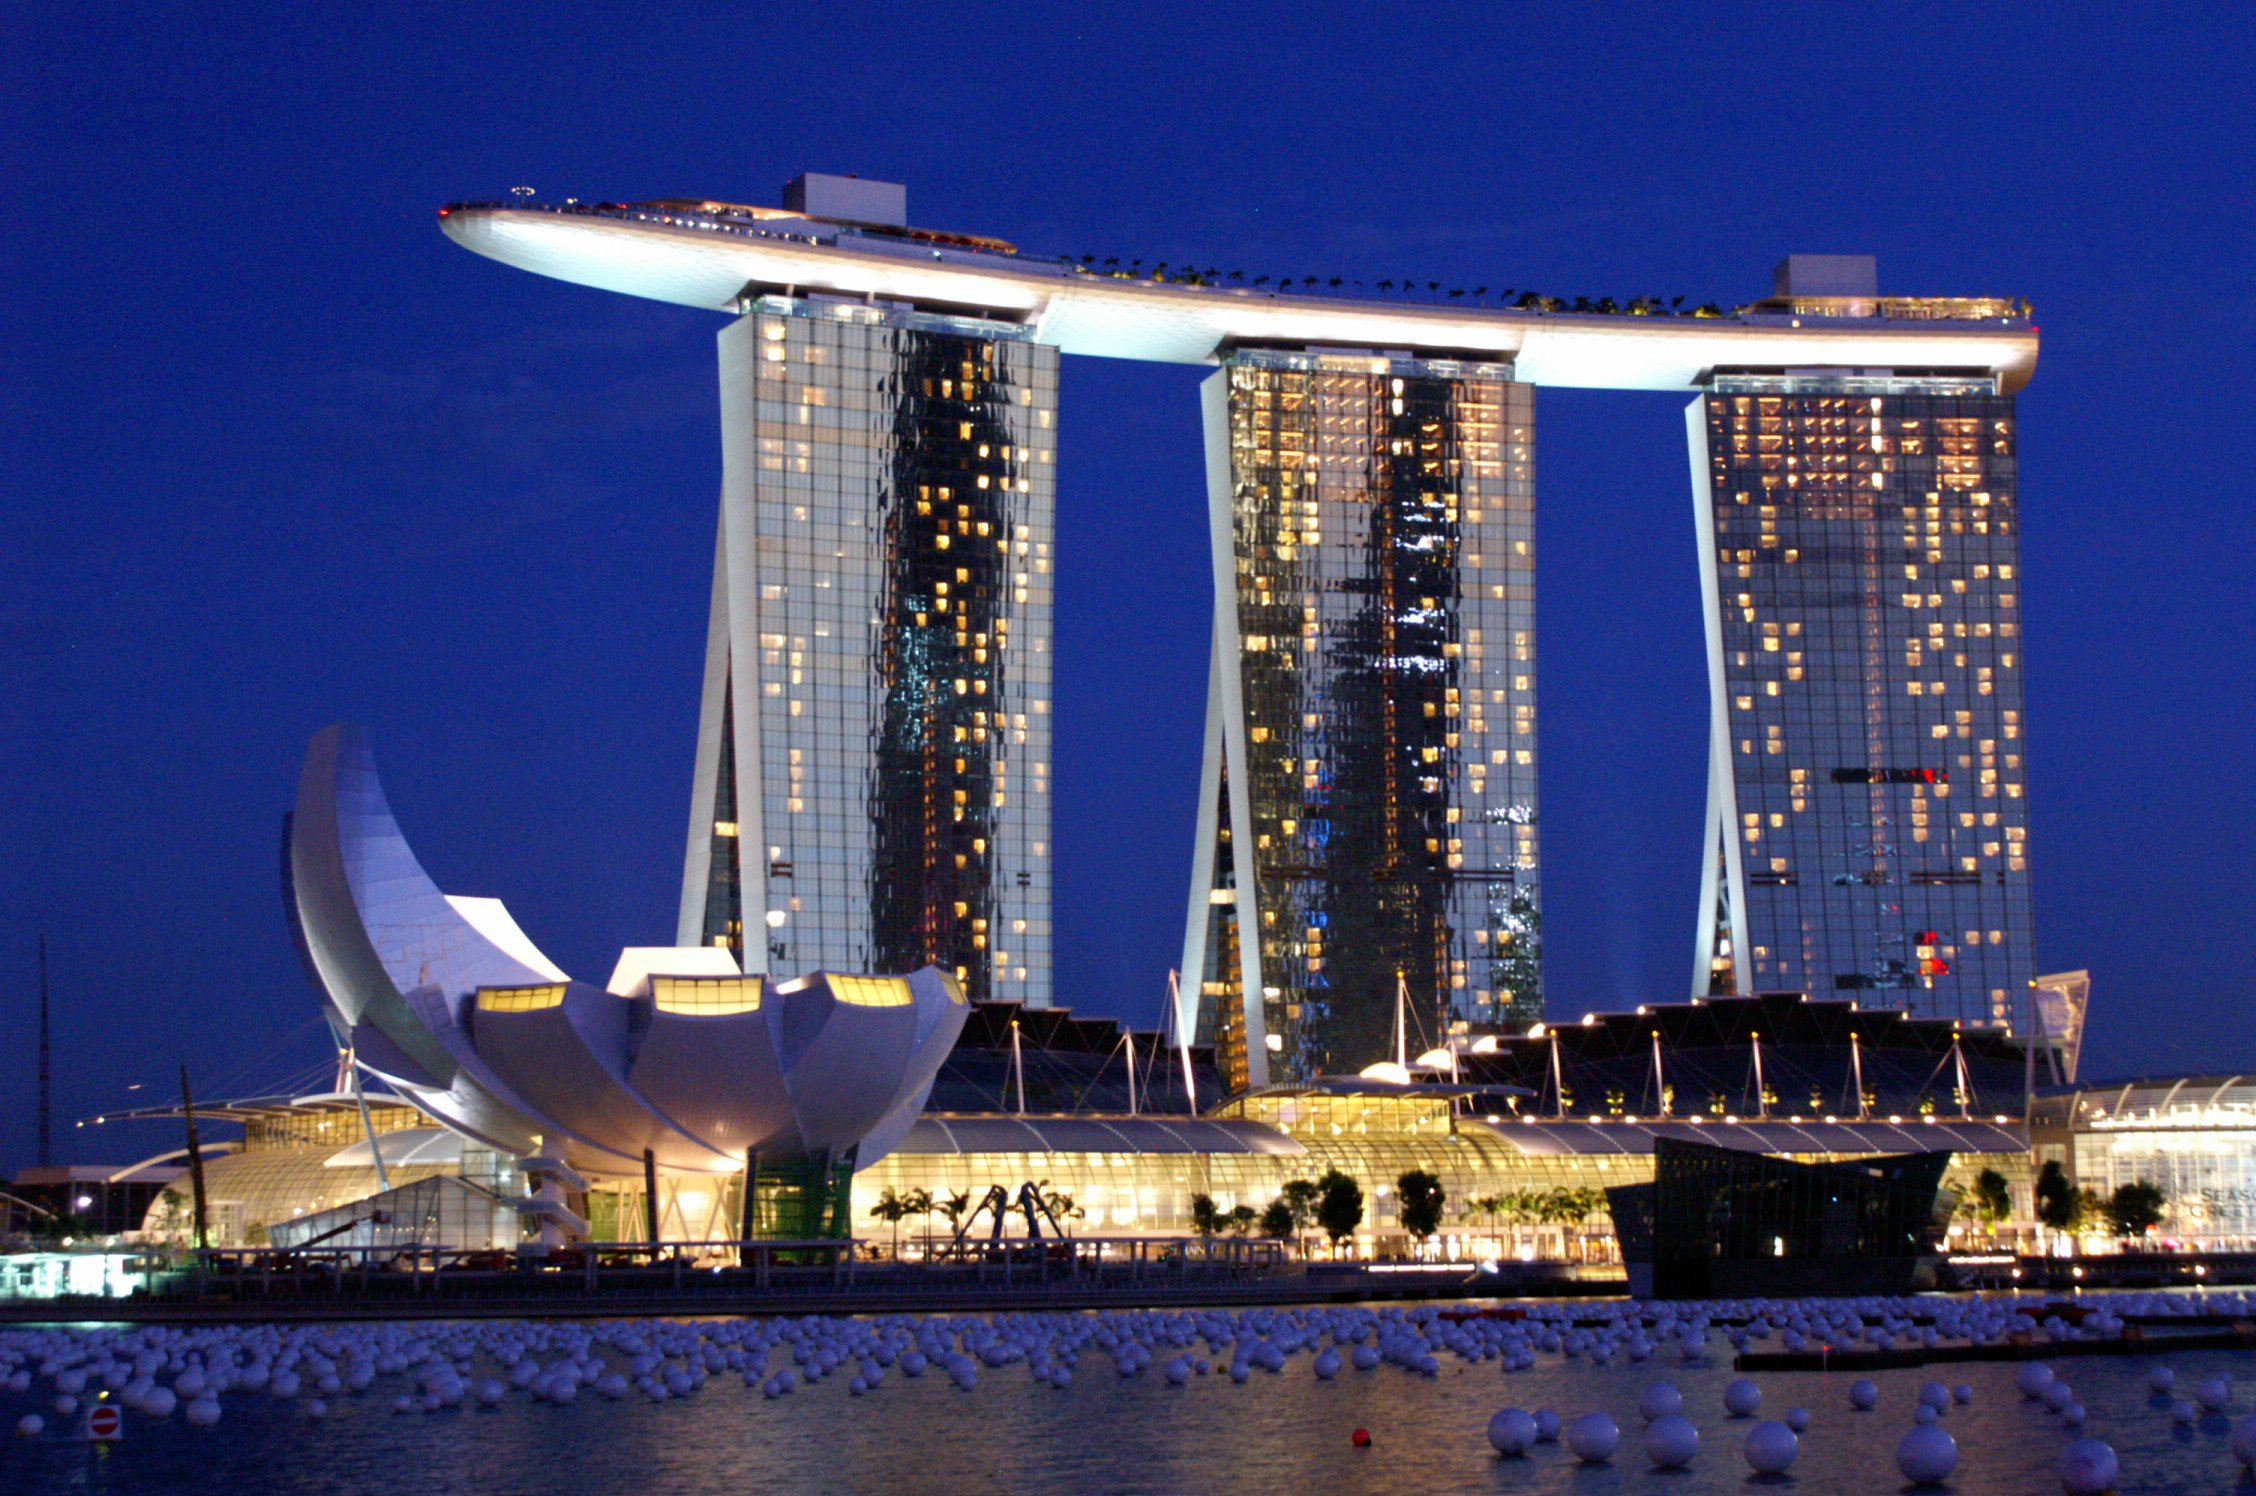 Marina Bay Financial Centre Tower 1 (Commercial Building